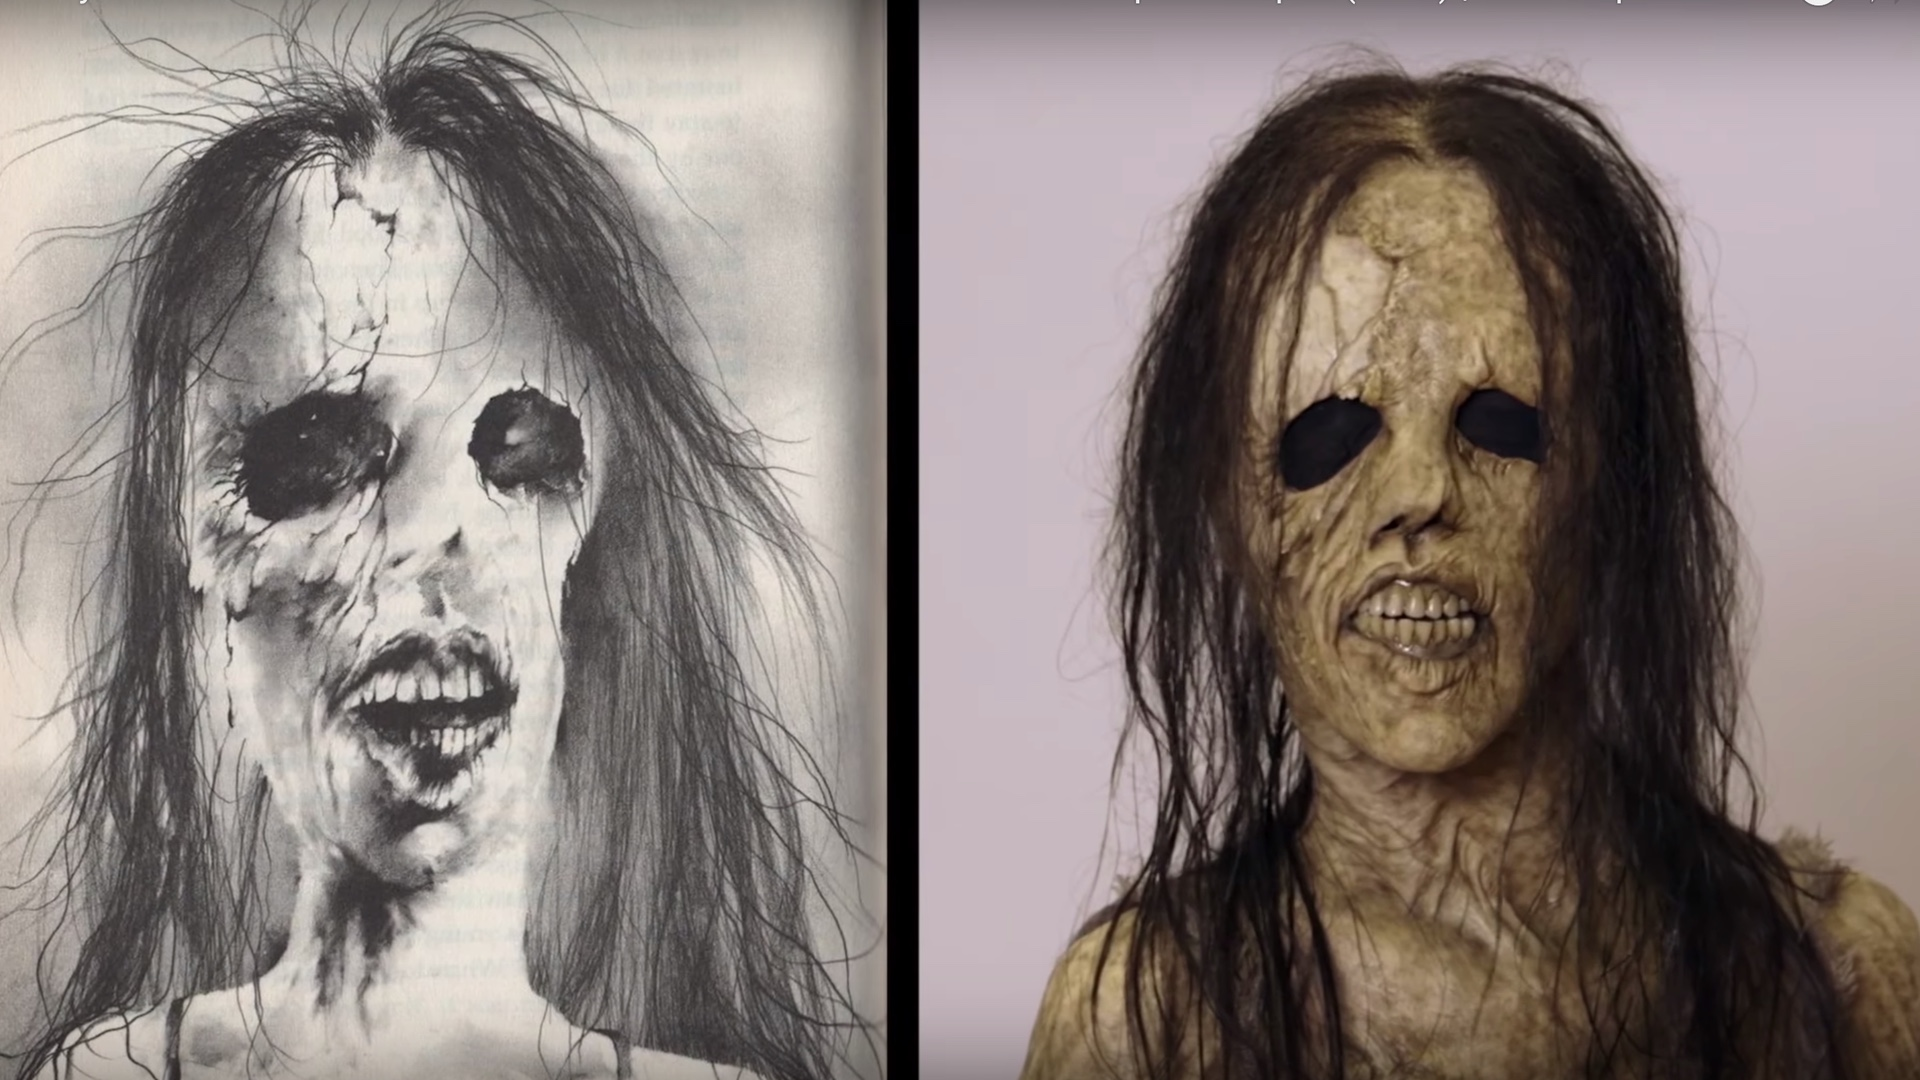 scary-stories-to-tell-in-the-dark-featurette-shows-off-some-cool-monster-makeup-work-social.jpg